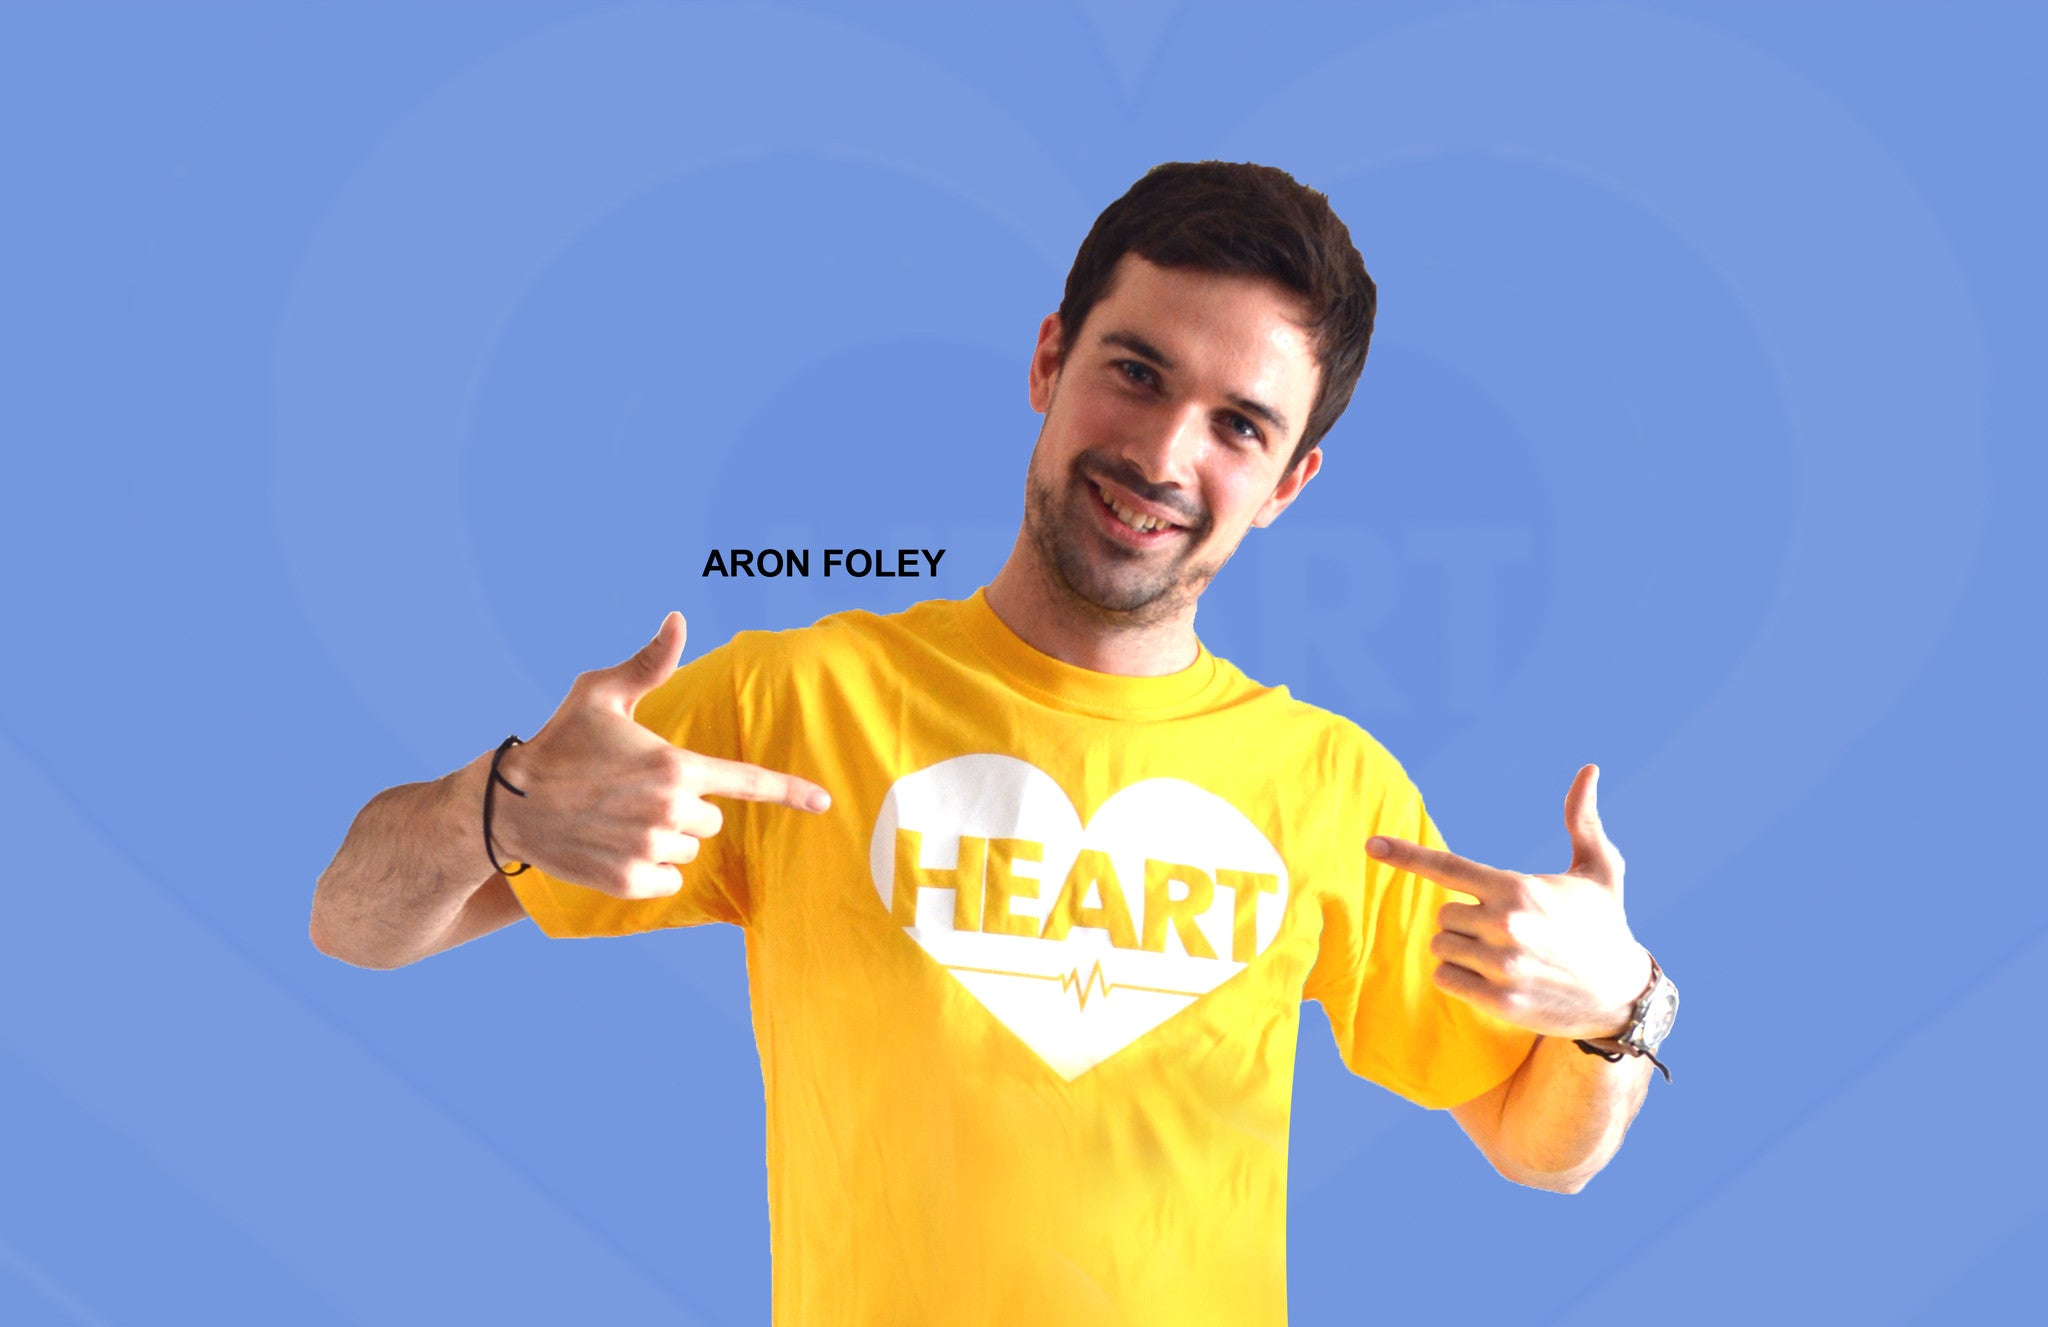 Heart on Chest T-shirt, Bright vibrant colors